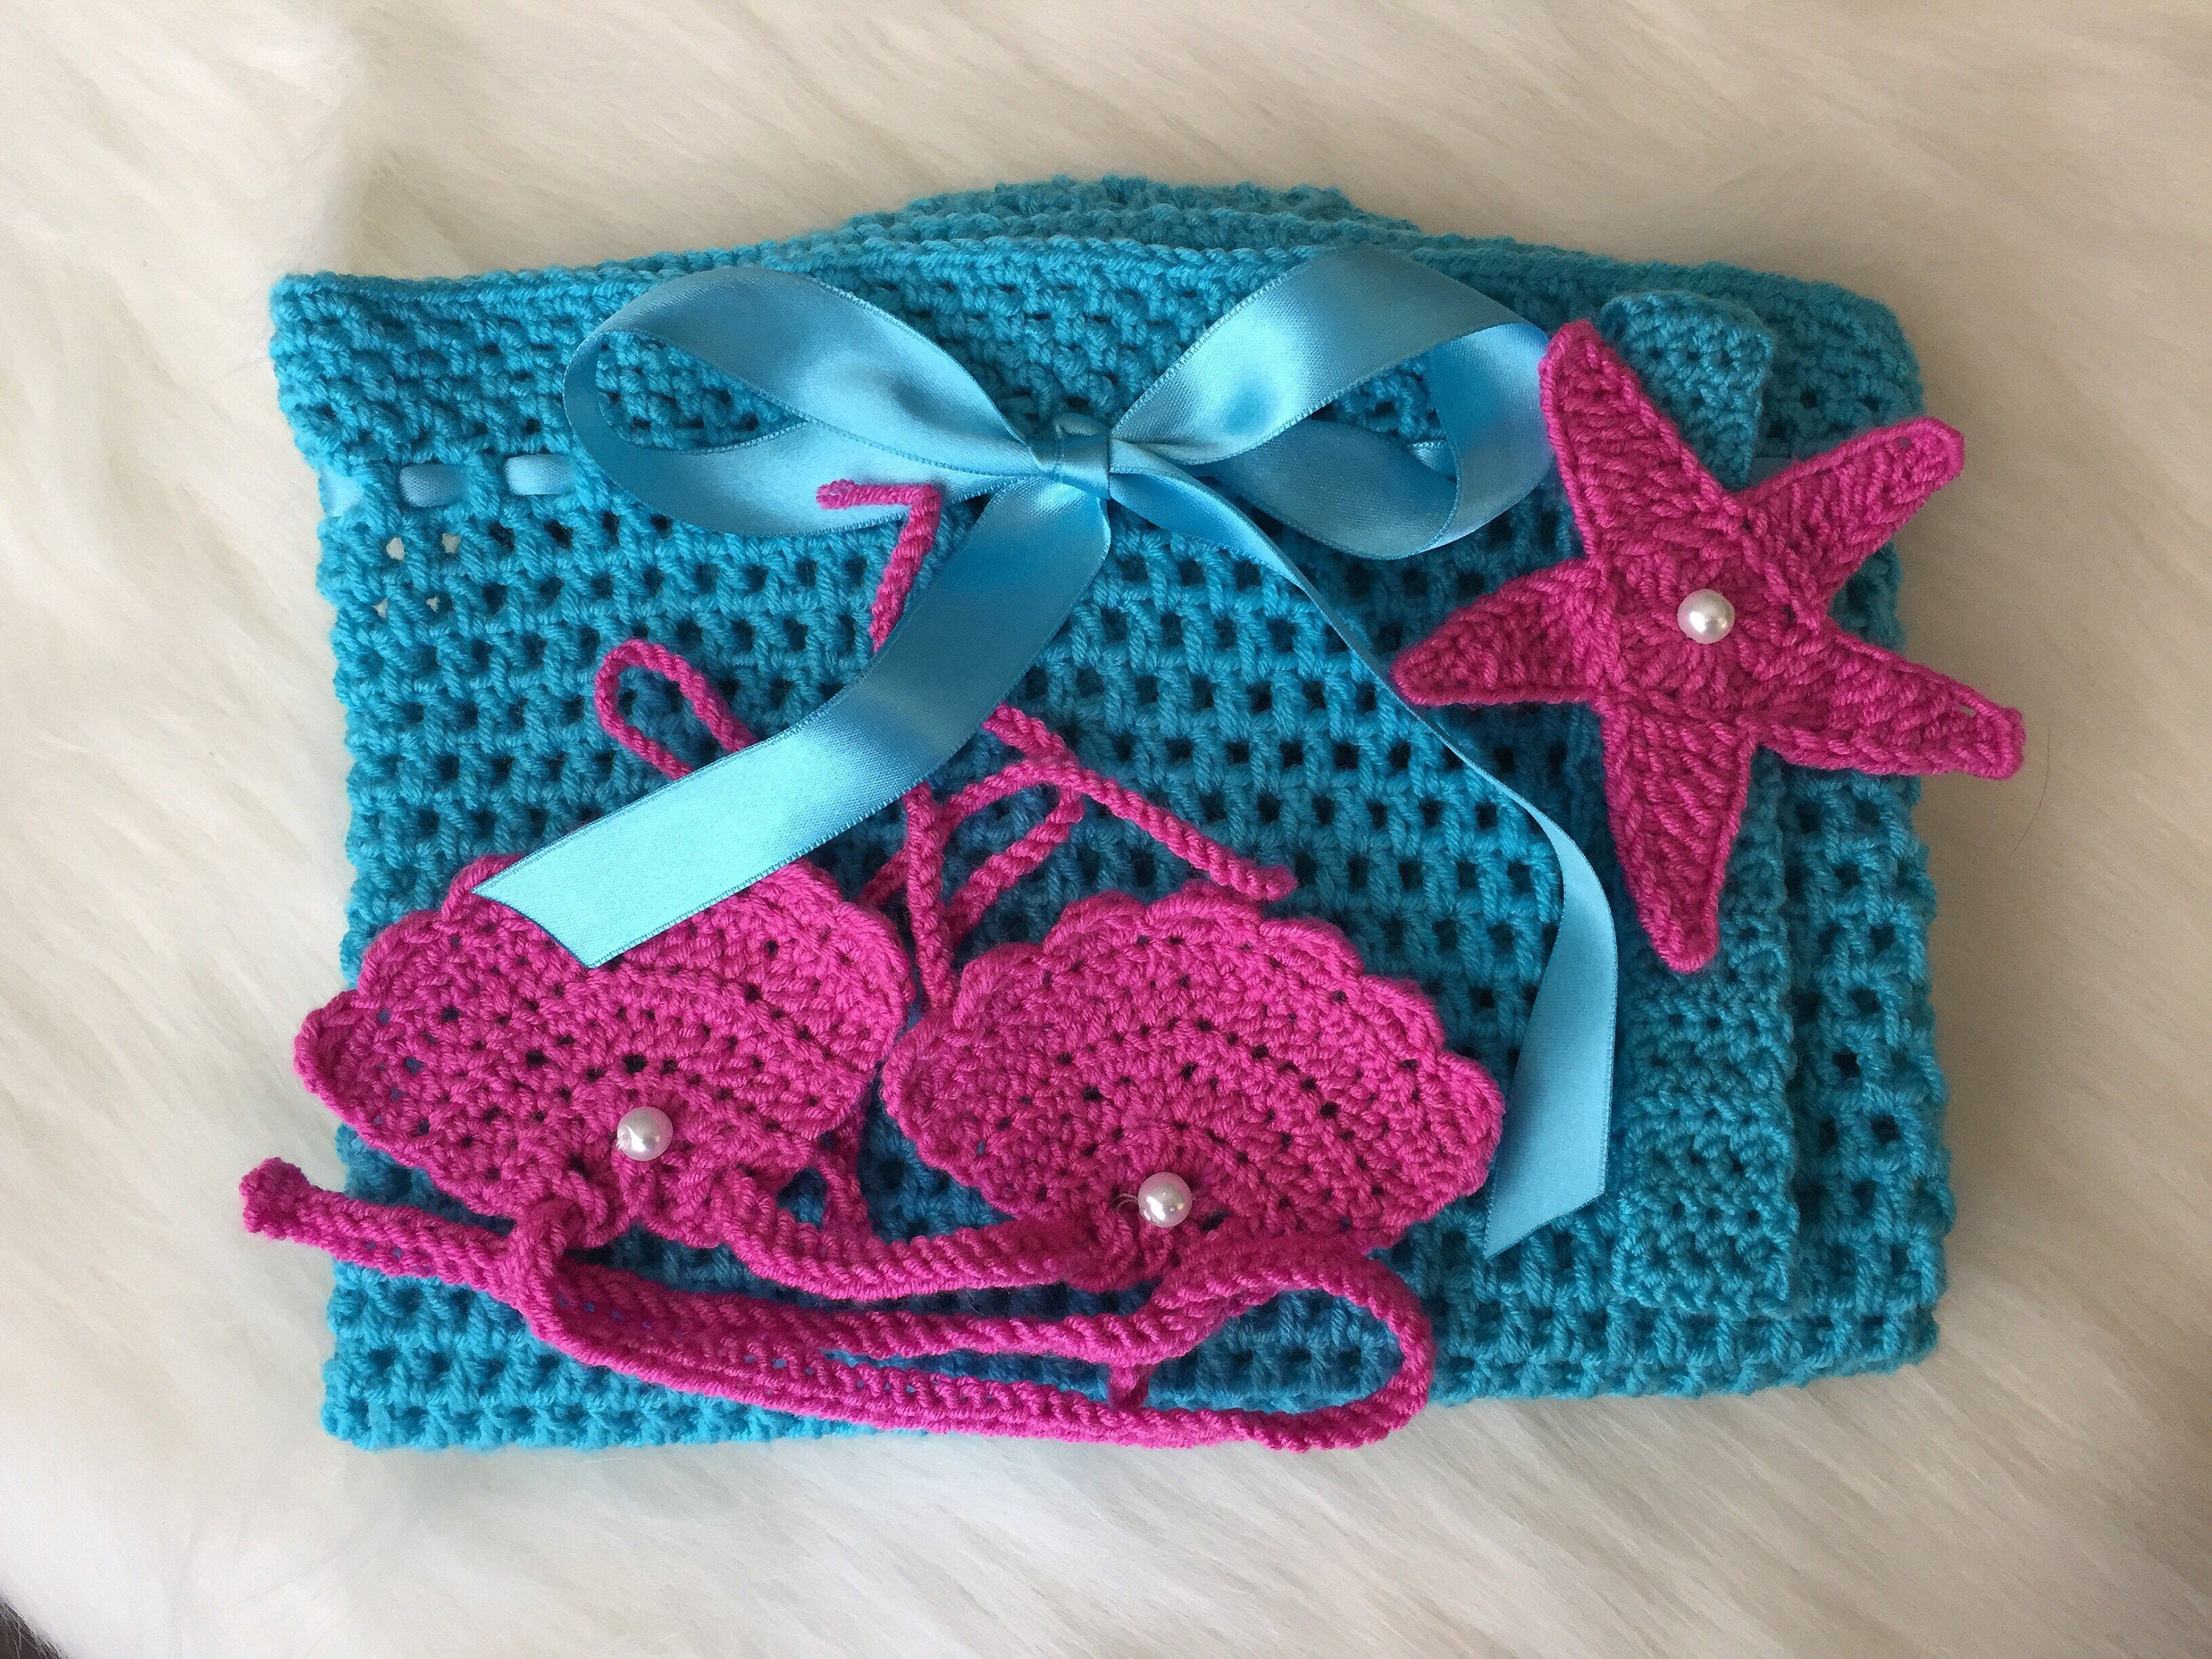 Handmade Mermaid Crochet Baby Costume - Babazen